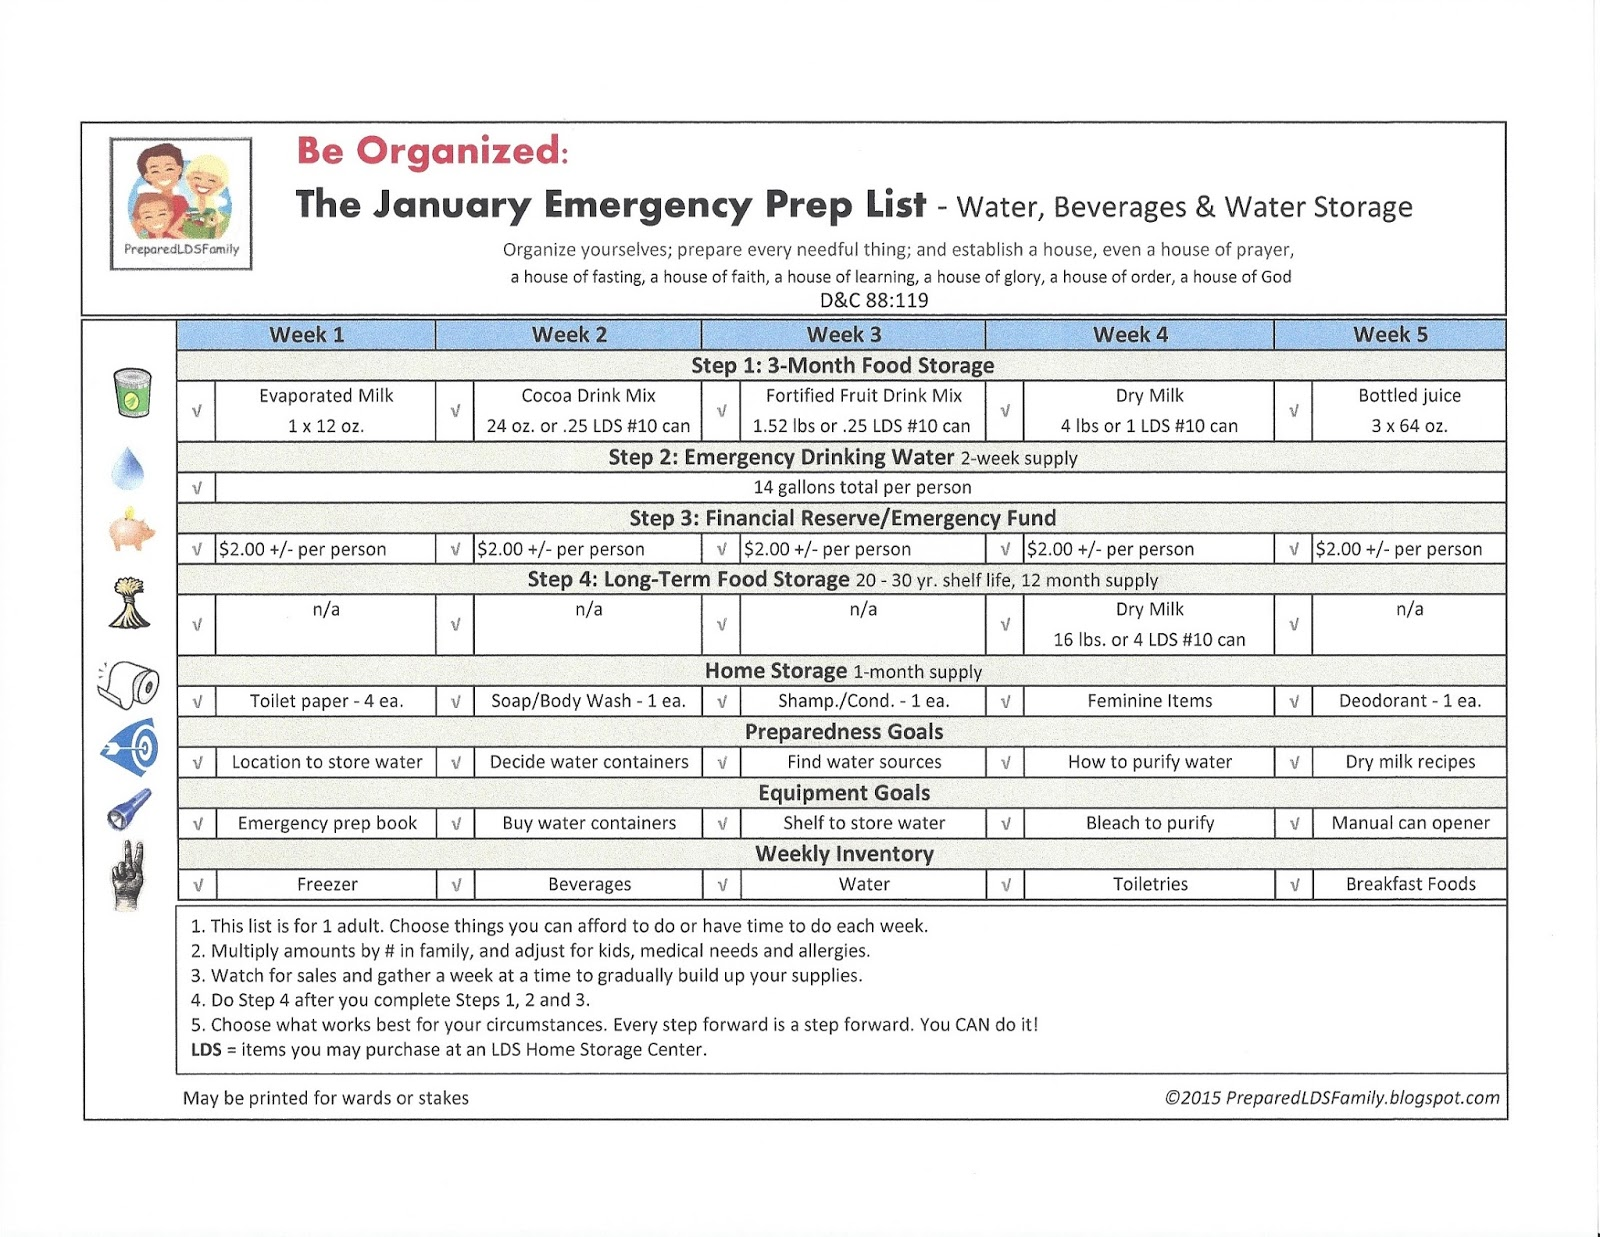 Prepared lds family 12 monthly emergency prep lists january water beverages and water storage click here for printable january list click here for the january 2017 emergency prep calendar coming forumfinder Choice Image